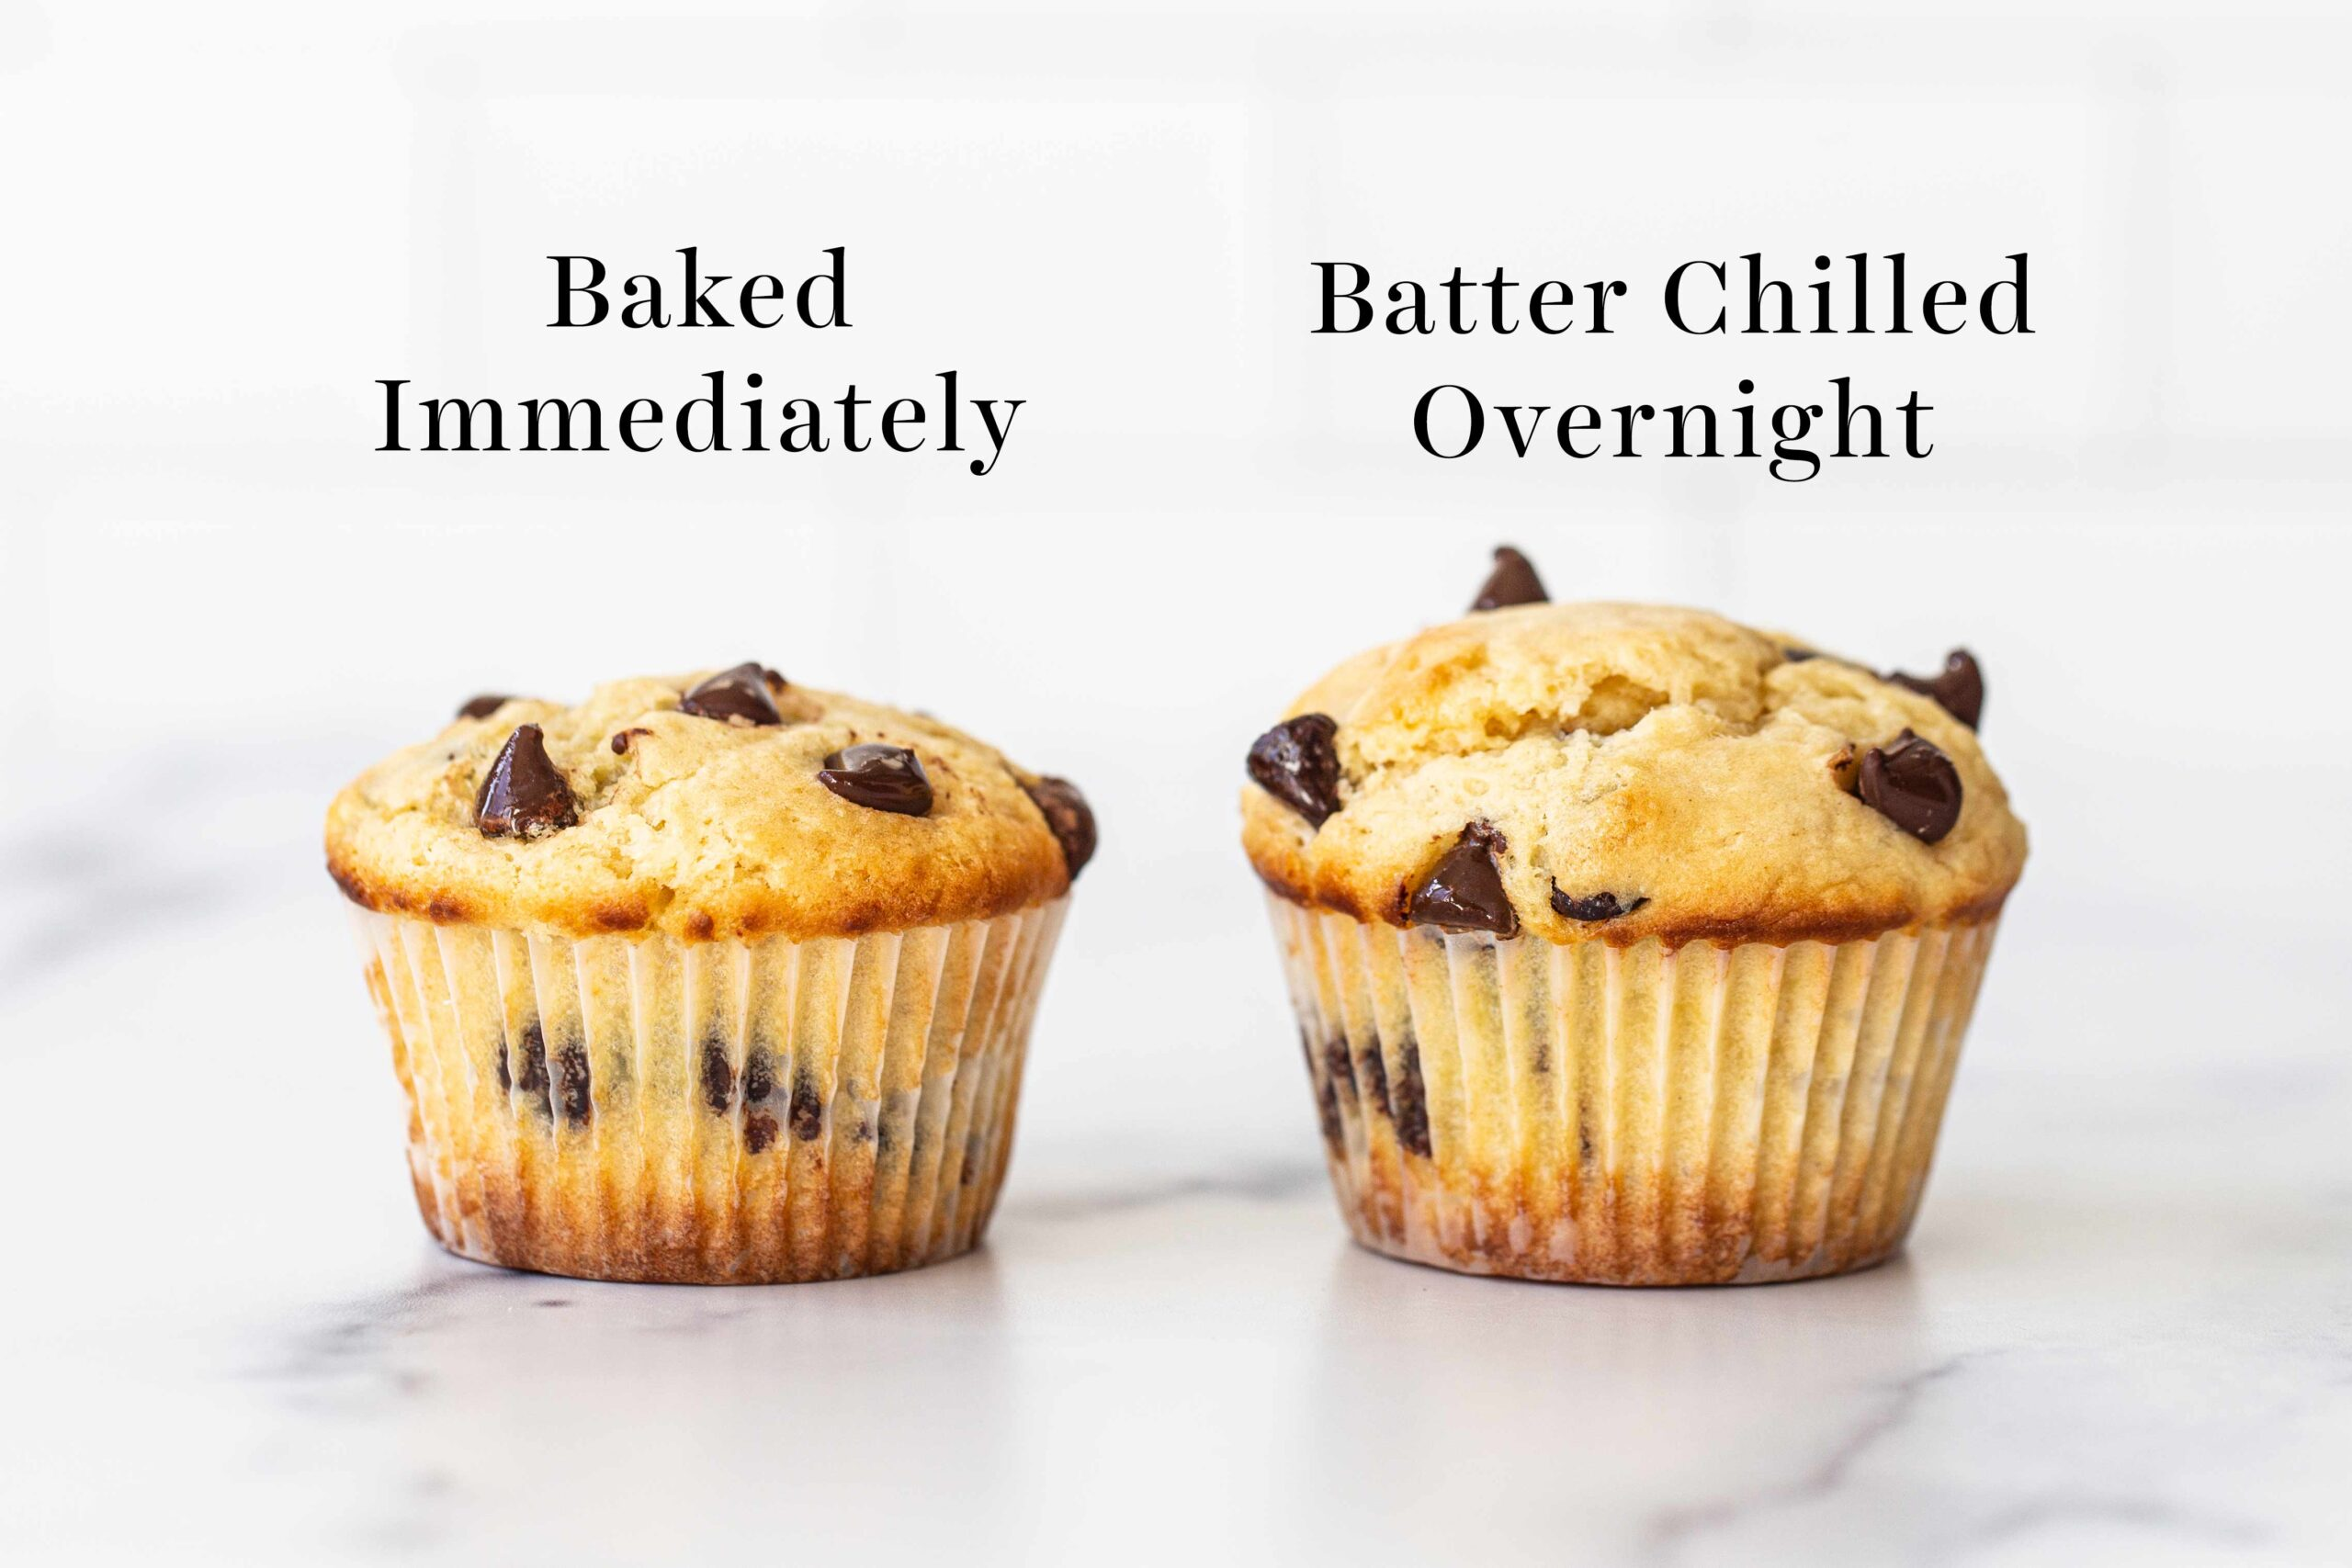 comparison of muffin batter rested vs baked immediately